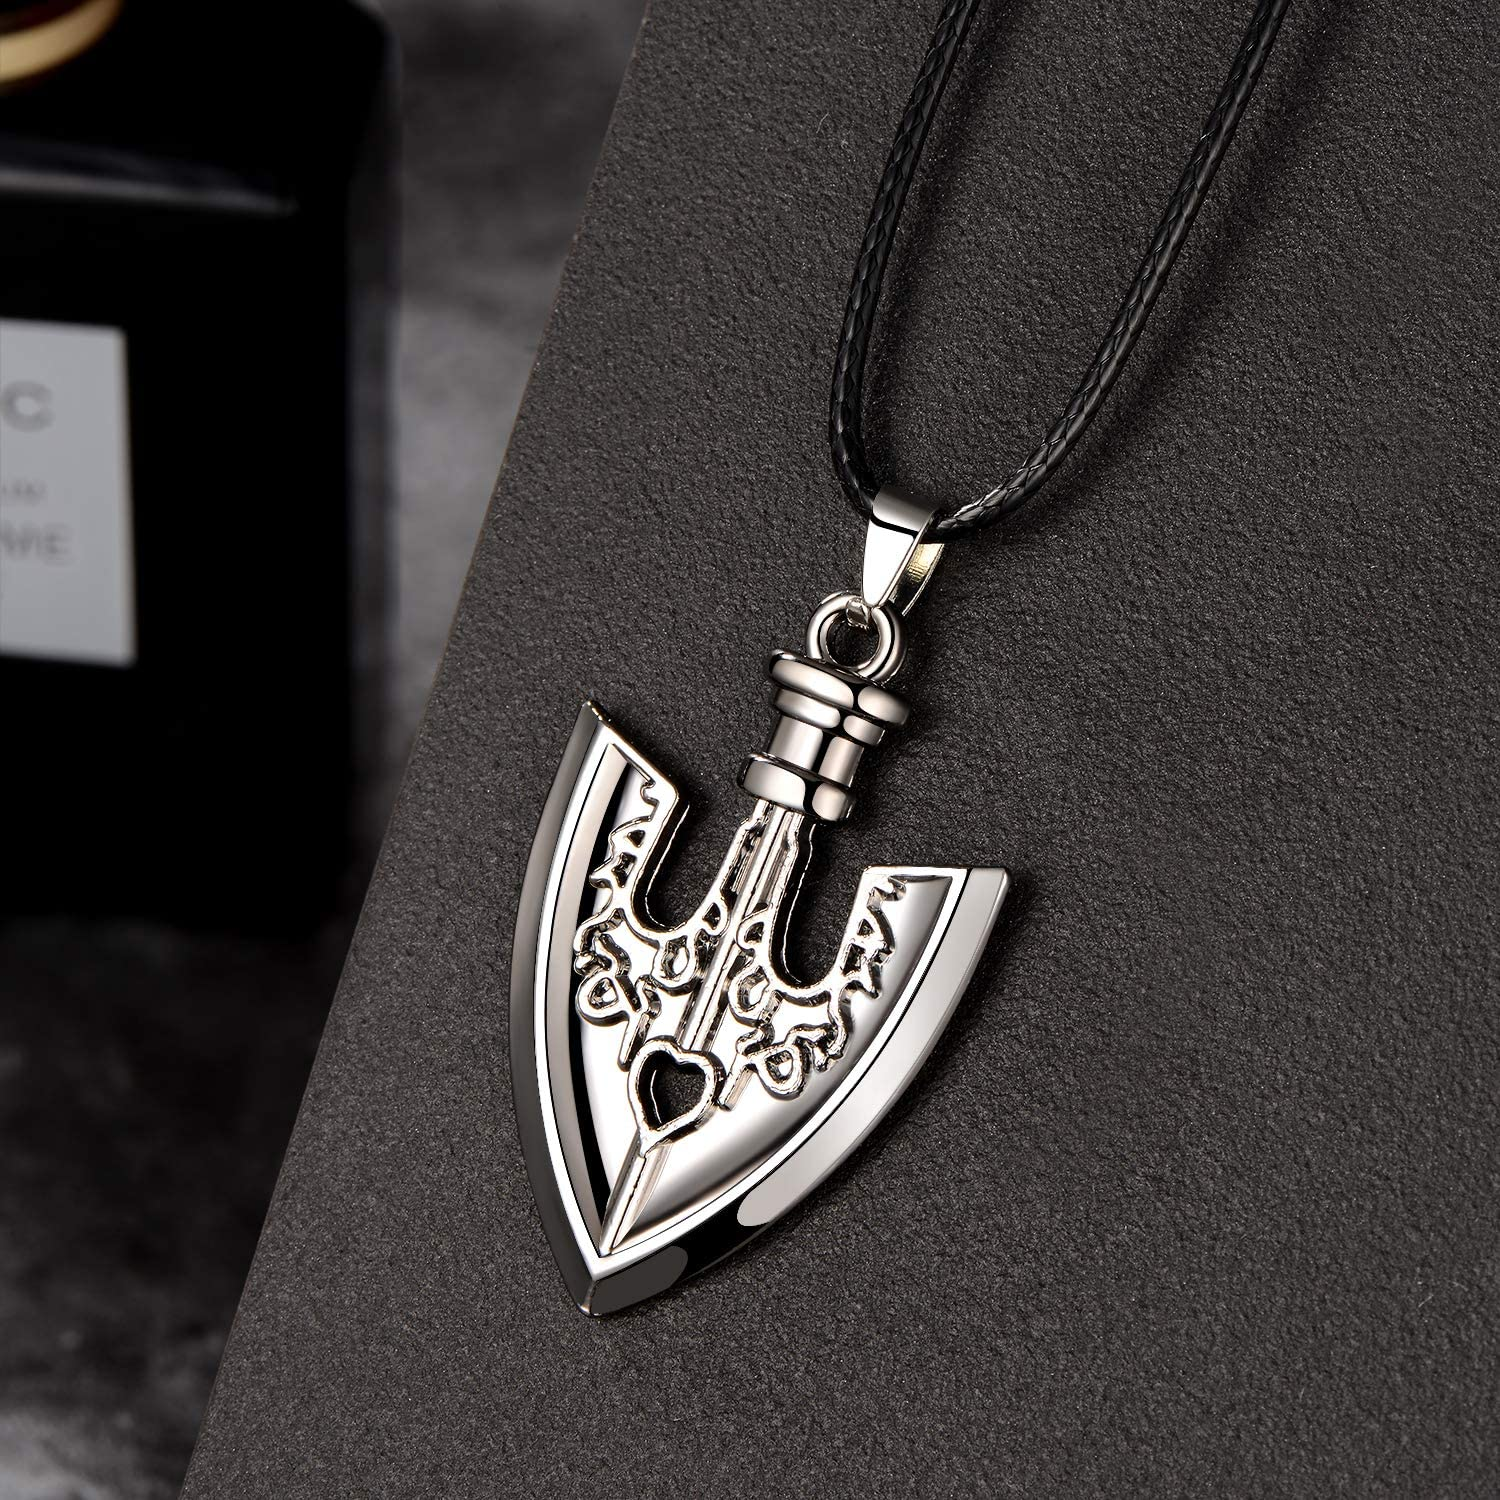 Amazon Com Jojo Stand Arrow Requiem Arrow Pendant Necklace Stand Arrow Zinc Alloy Clothing These dimensions range from the first dimension to the fifth, with each dimension having an axis third dimension, depth: jojo stand arrow requiem arrow pendant necklace stand arrow zinc alloy